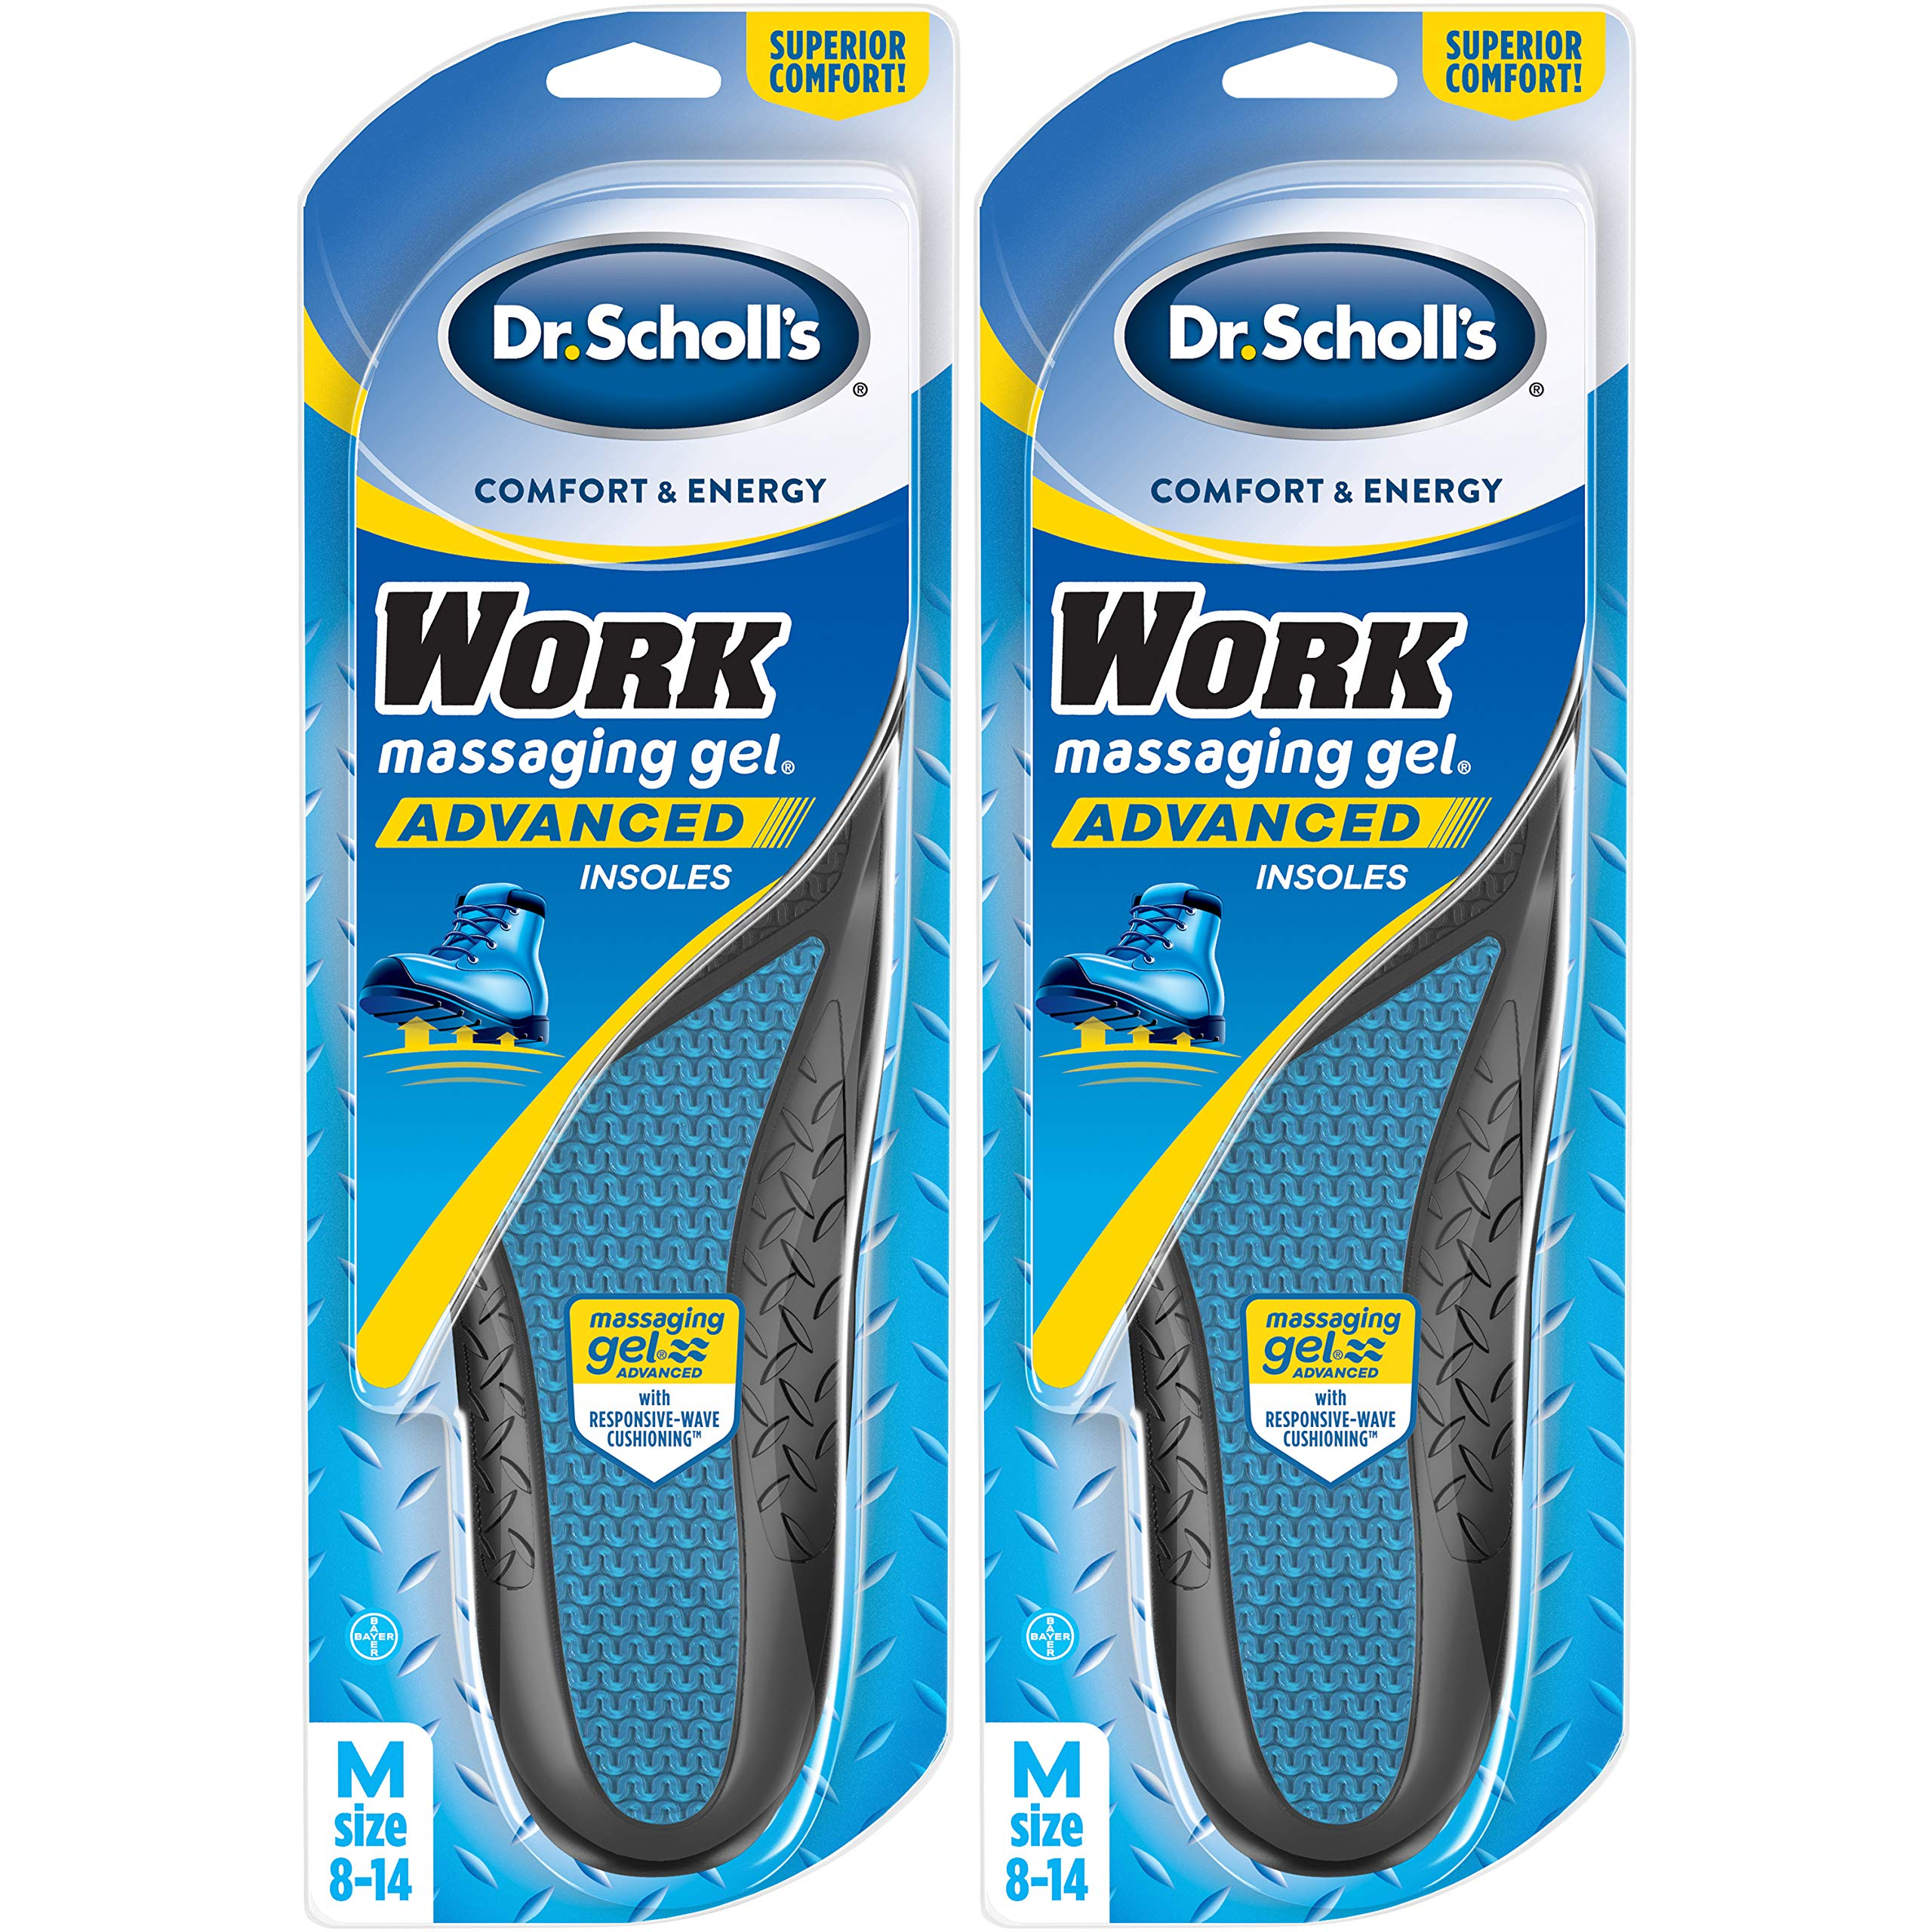 Dr. Scholl's WORK Insoles (Pack 2) // All-Day Shock Absorption and Reinforced Arch Support that Fits in Work Boots and More (for Men's 8-14, also available for Women's 6-10) by Dr. Scholl's